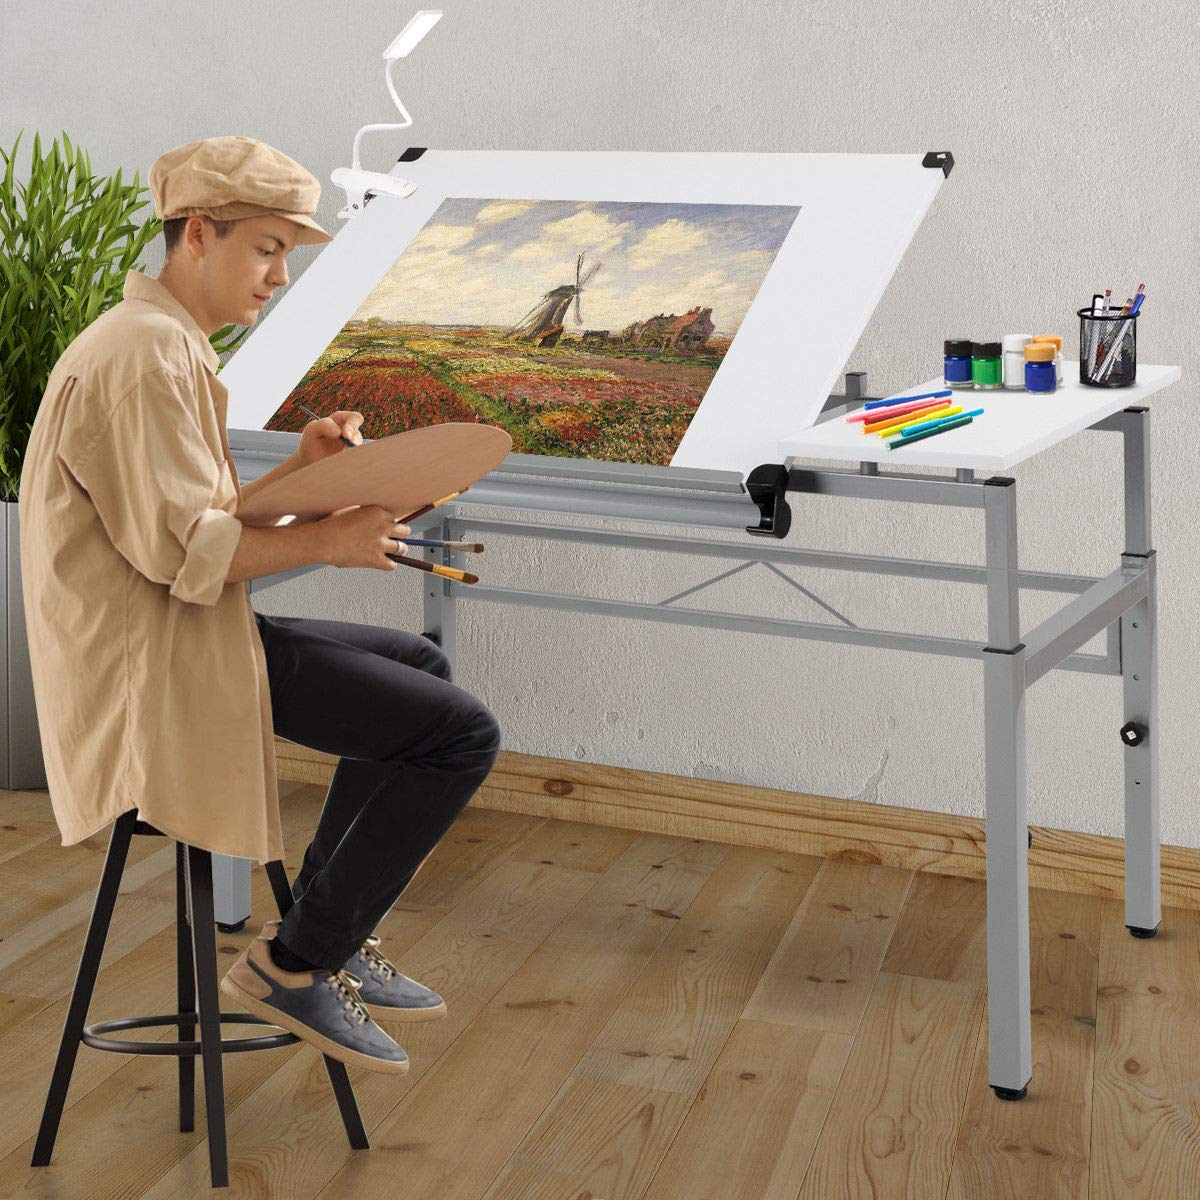 Seleq Adjustable Steel Frame Drawing Desk Drafting Table by Seleq (Image #9)